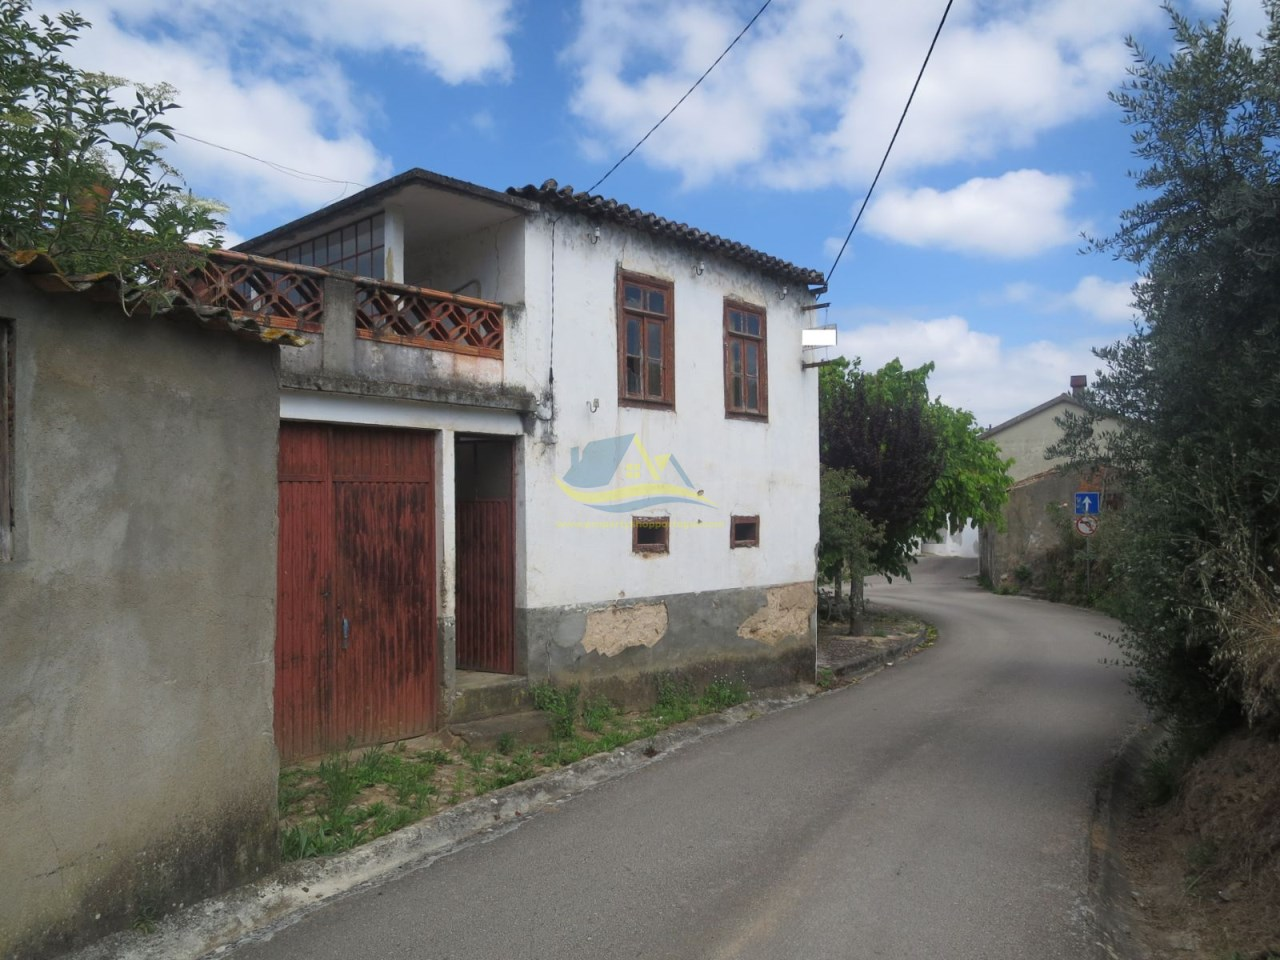 Detached property of stone construction, adega and land